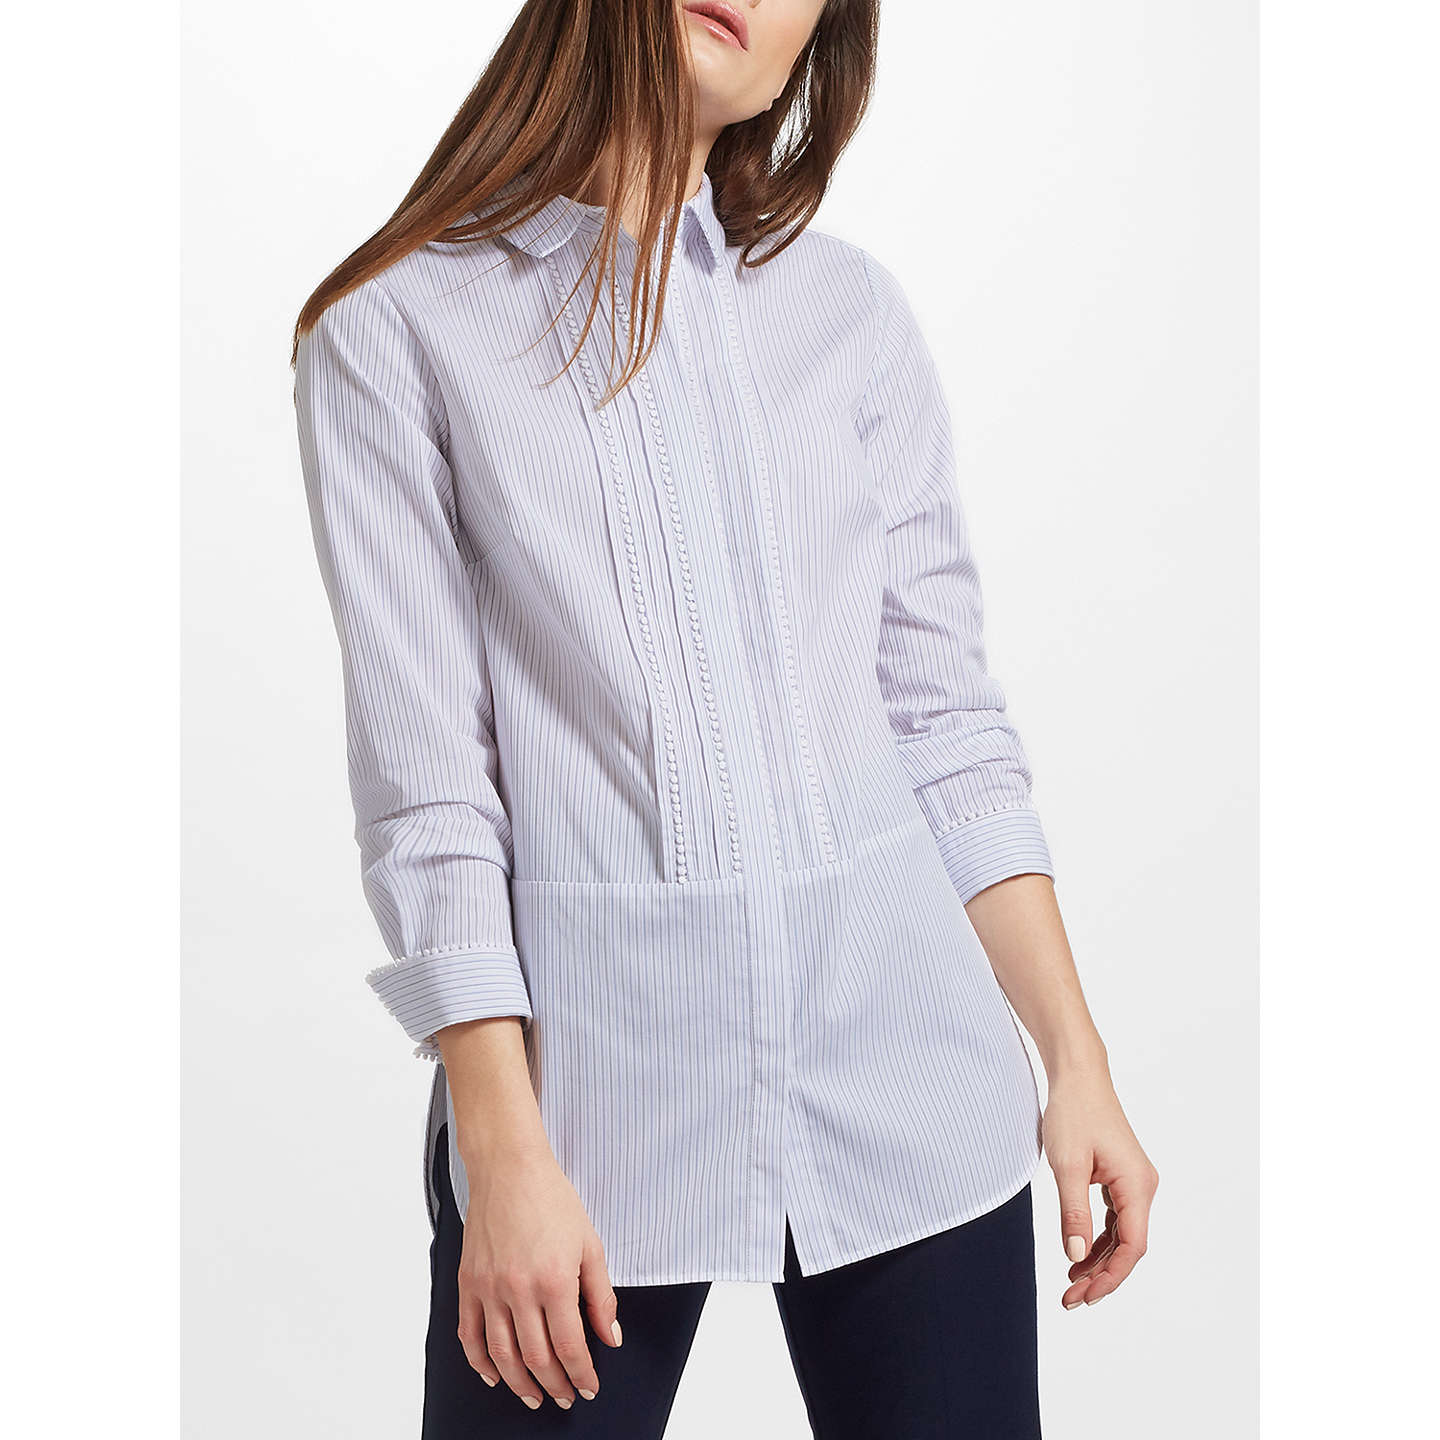 BuyJohn Lewis Stripe Pom Trim Shirt, Blue, 8 Online at johnlewis.com